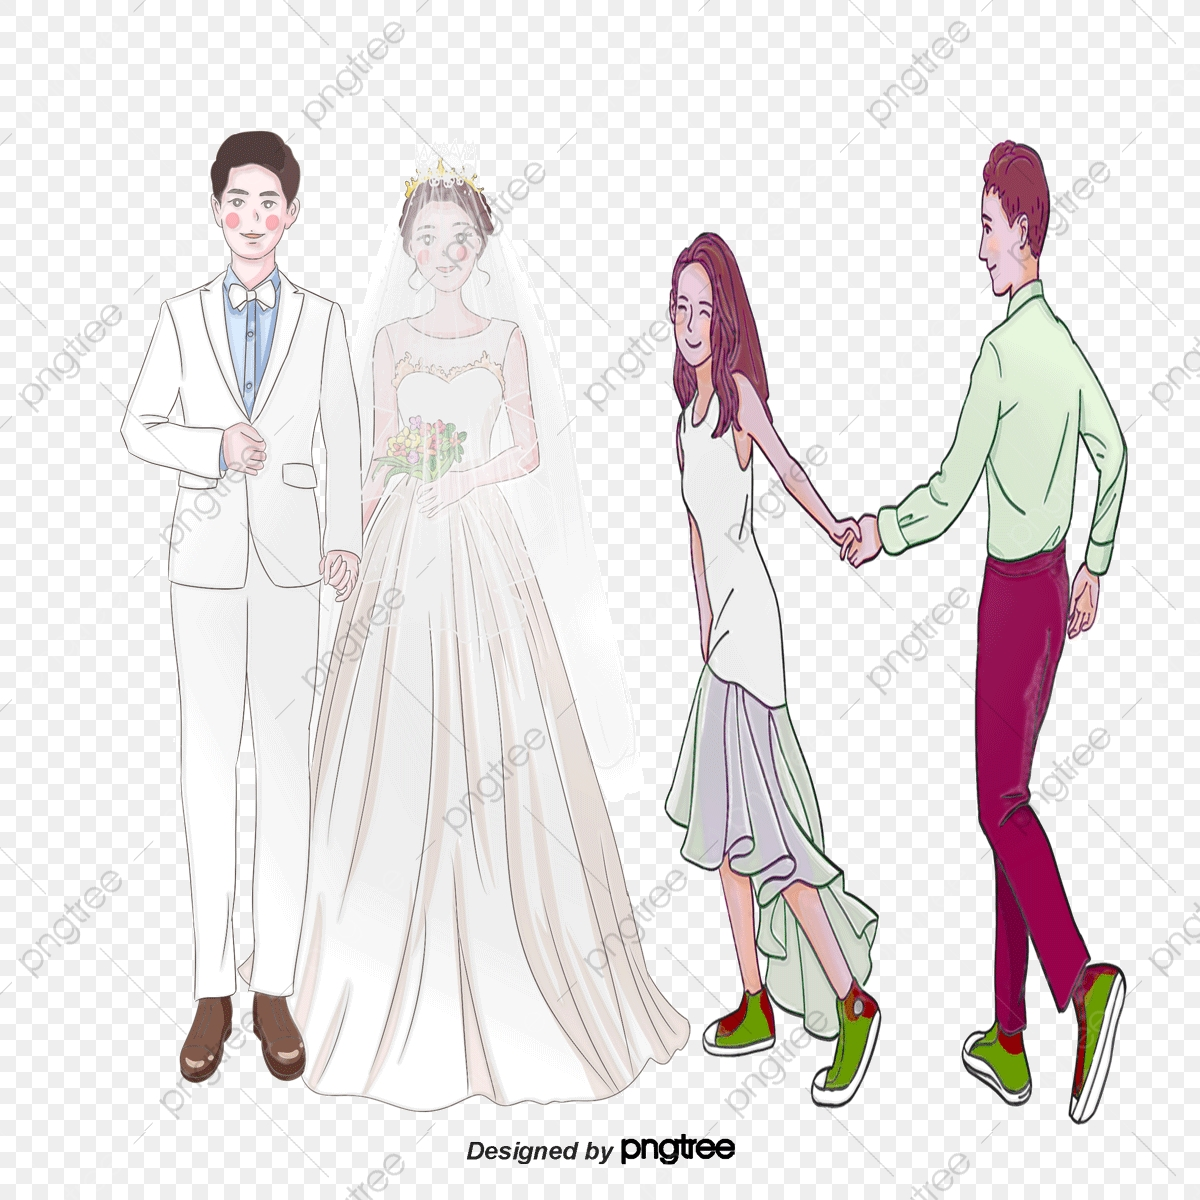 Sweet Newlywed Couple. Bride And Groom. Cute Cartoon Characters... Royalty Free  Cliparts, Vectors, And Stock Illustration. Image 97269886.